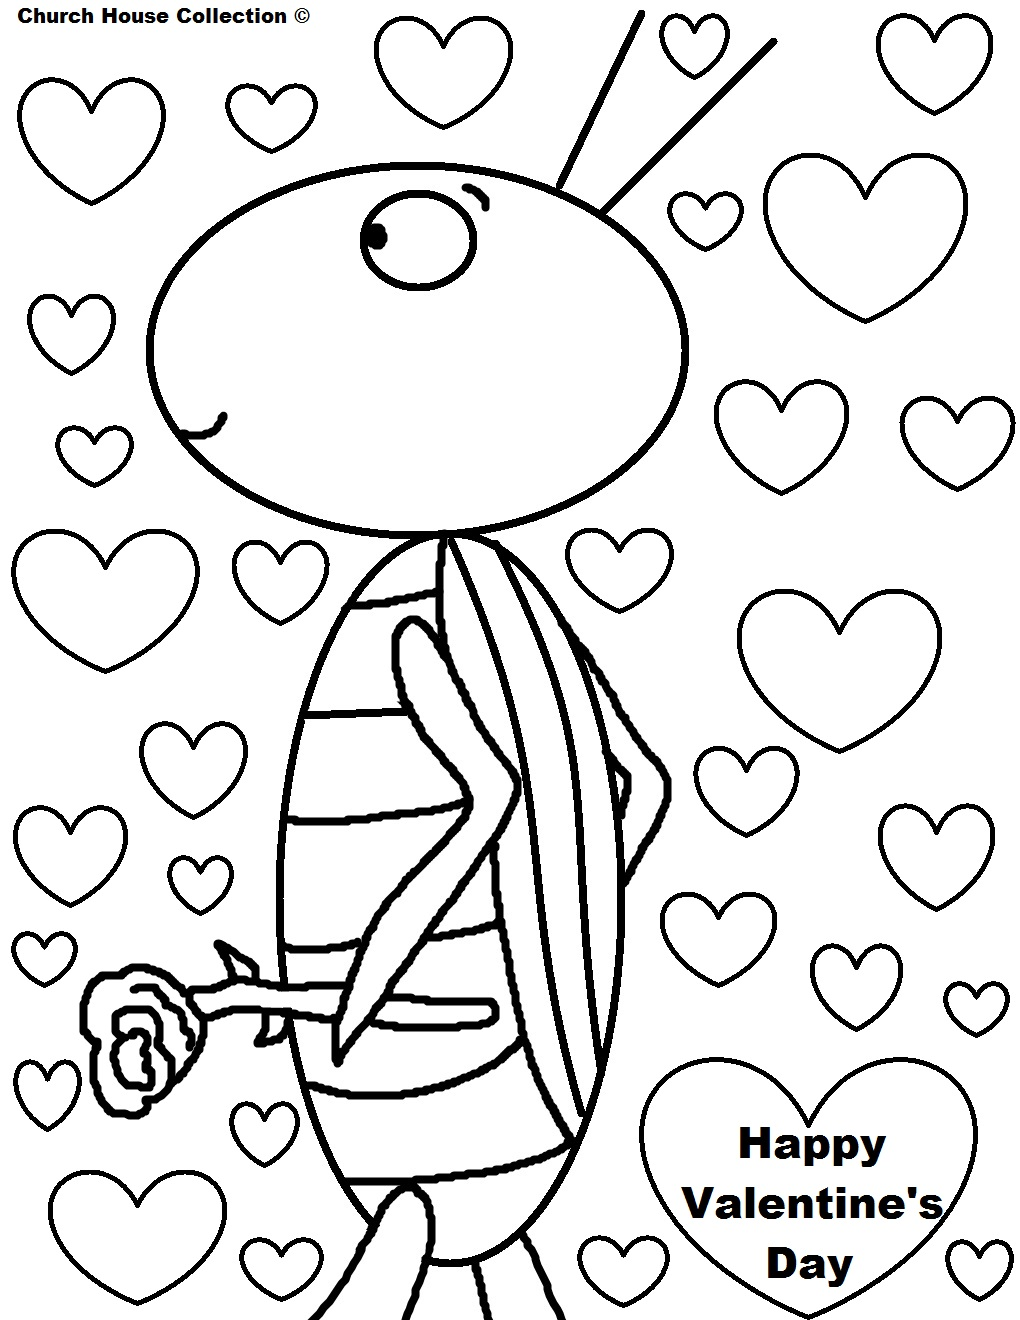 Coloring Pages For Valentines Day Cards at GetDrawings.com ...